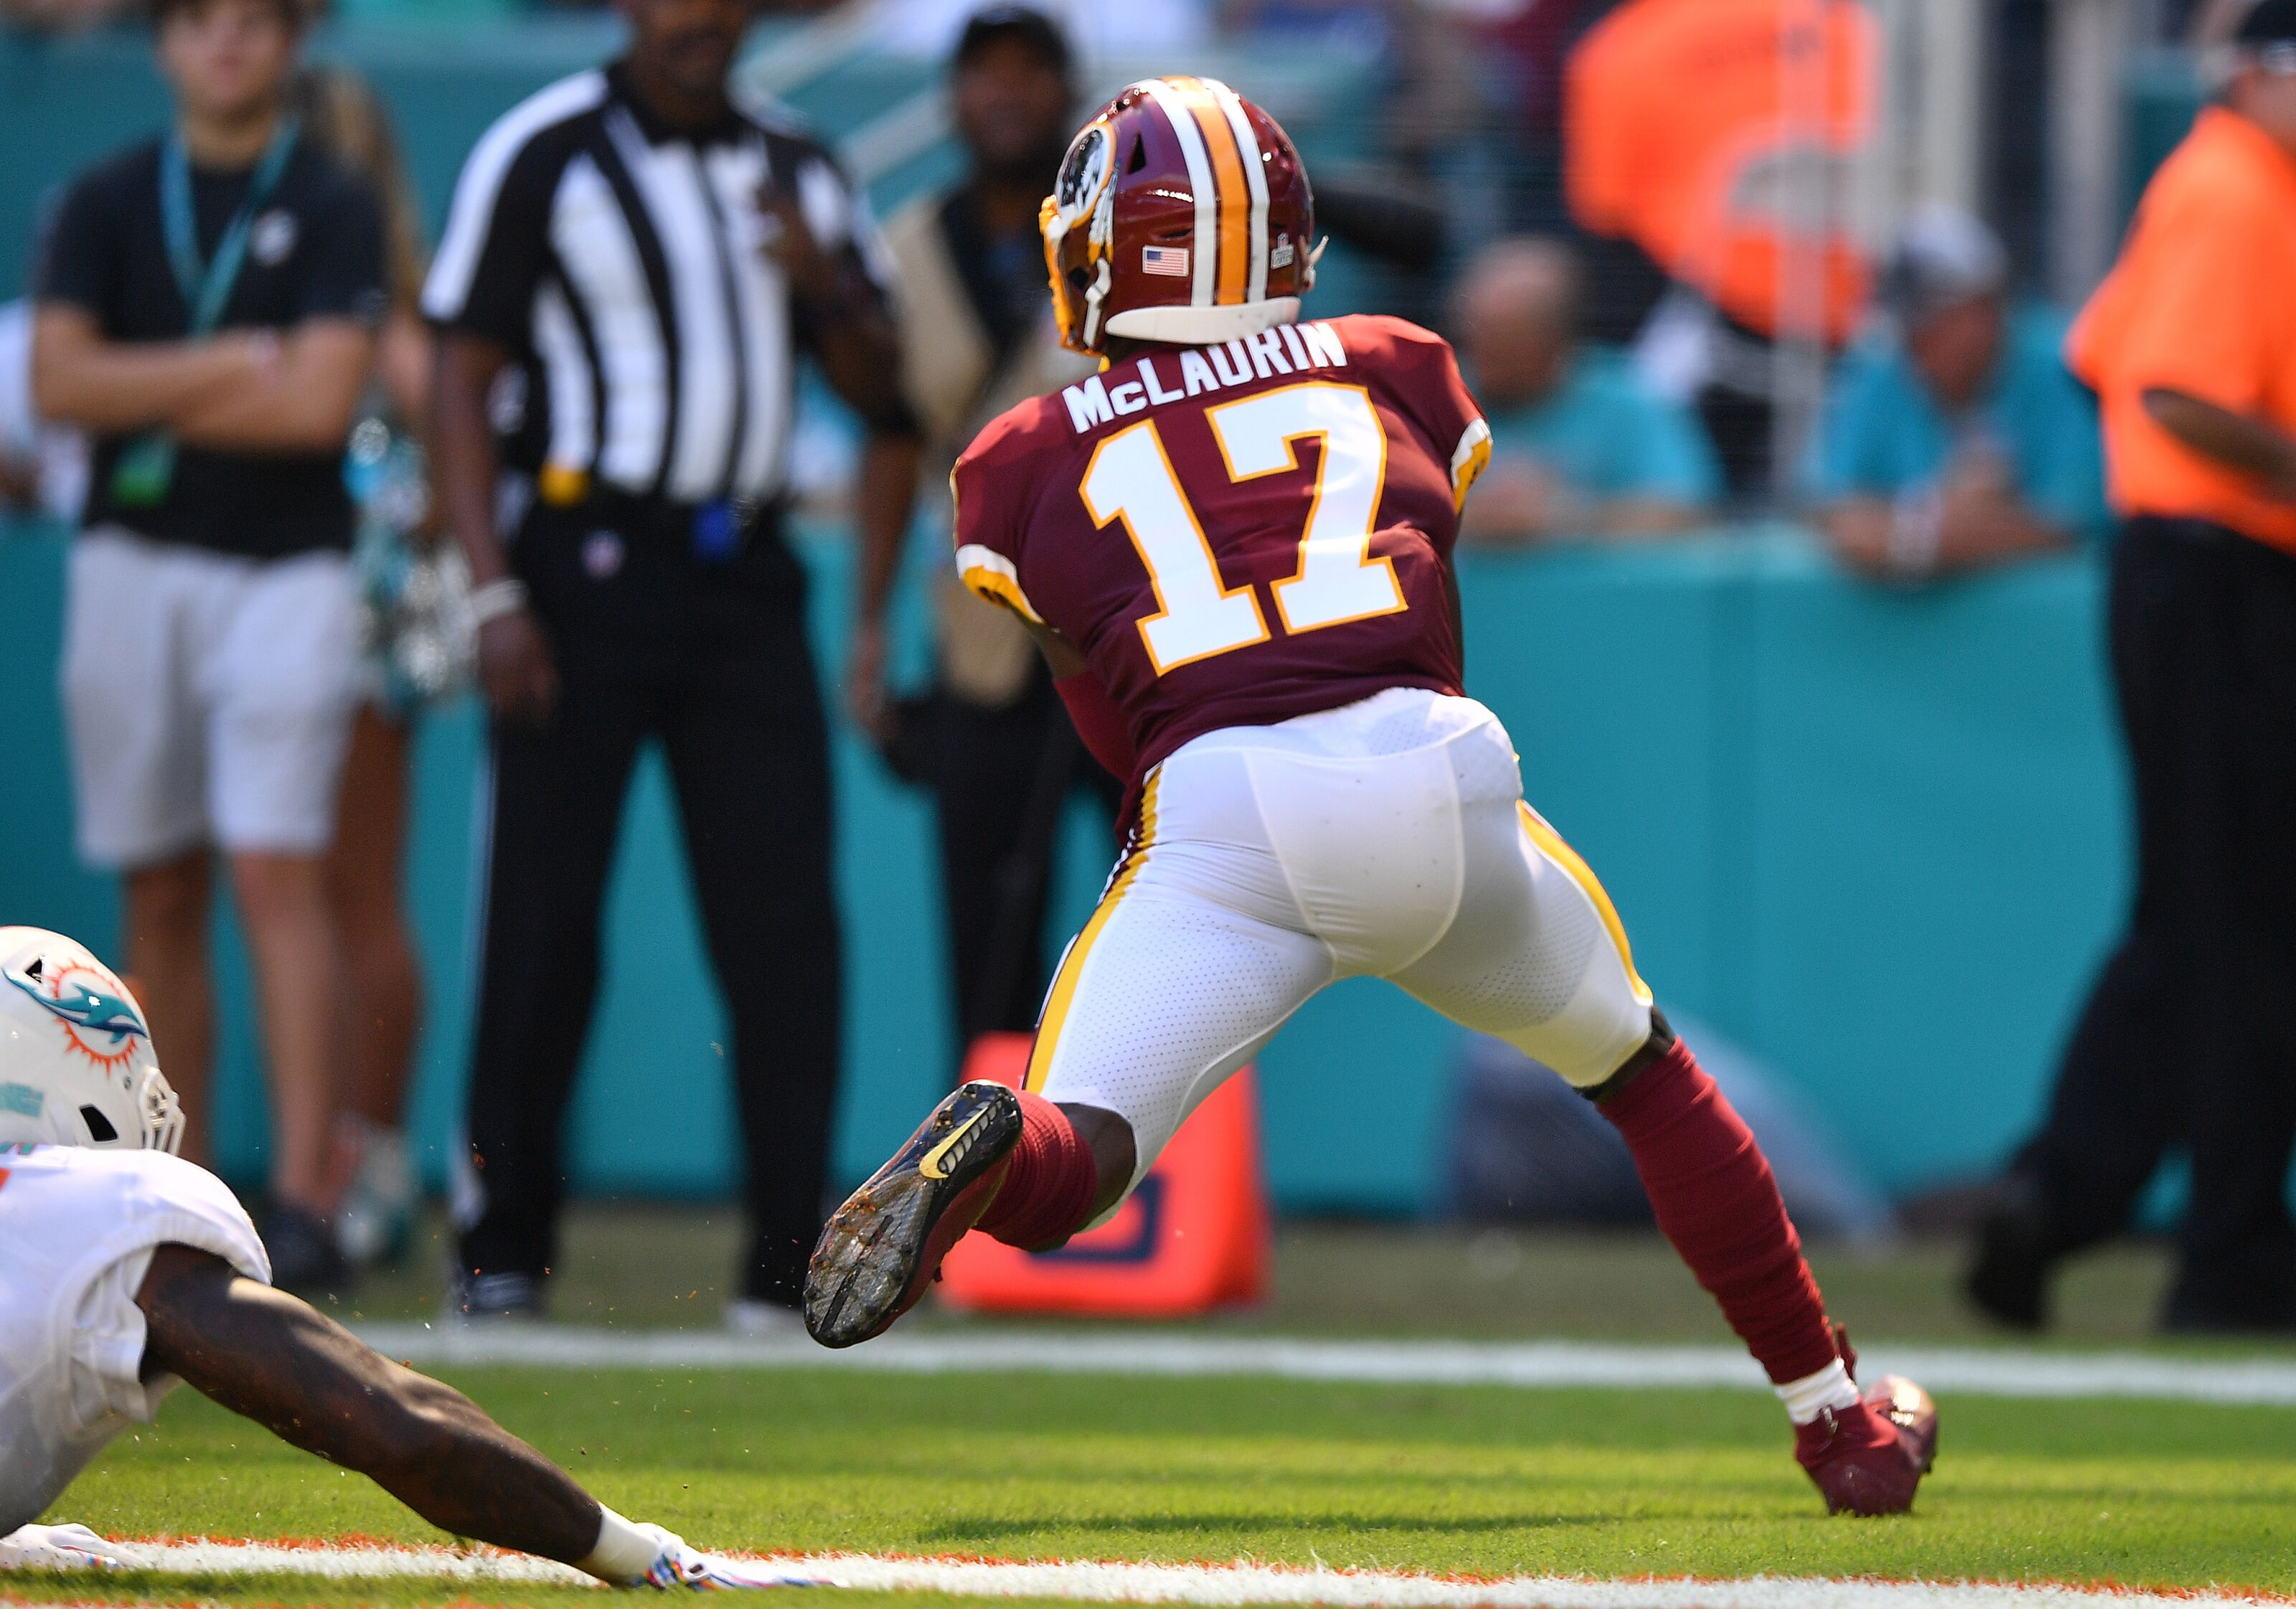 """Redskins QB Case Keenum on rookie Terry McLaurin: """"He's special"""""""